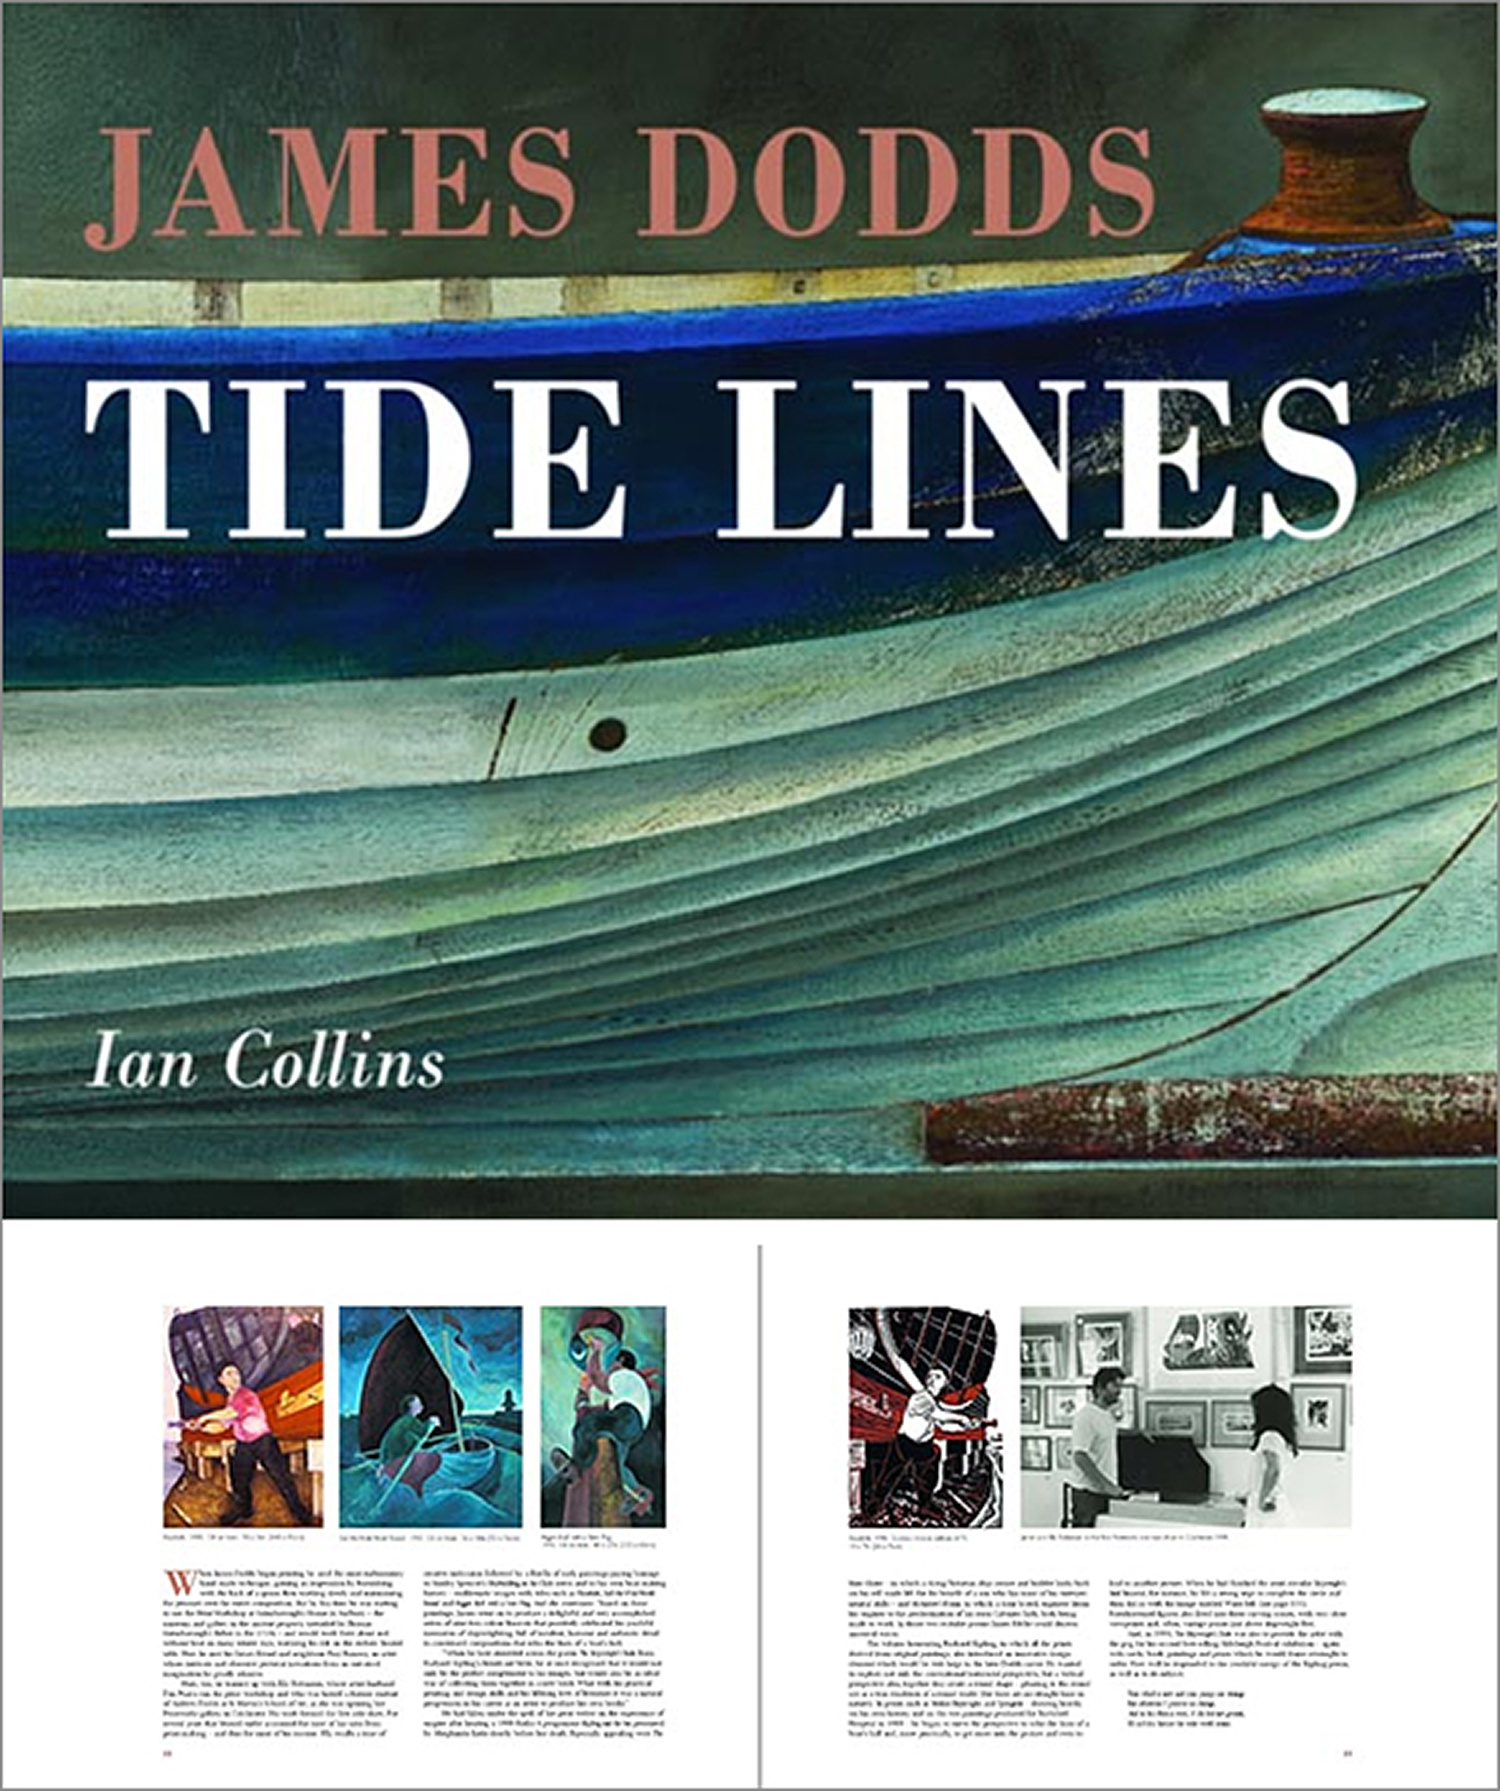 Tide Lines by James Dodds